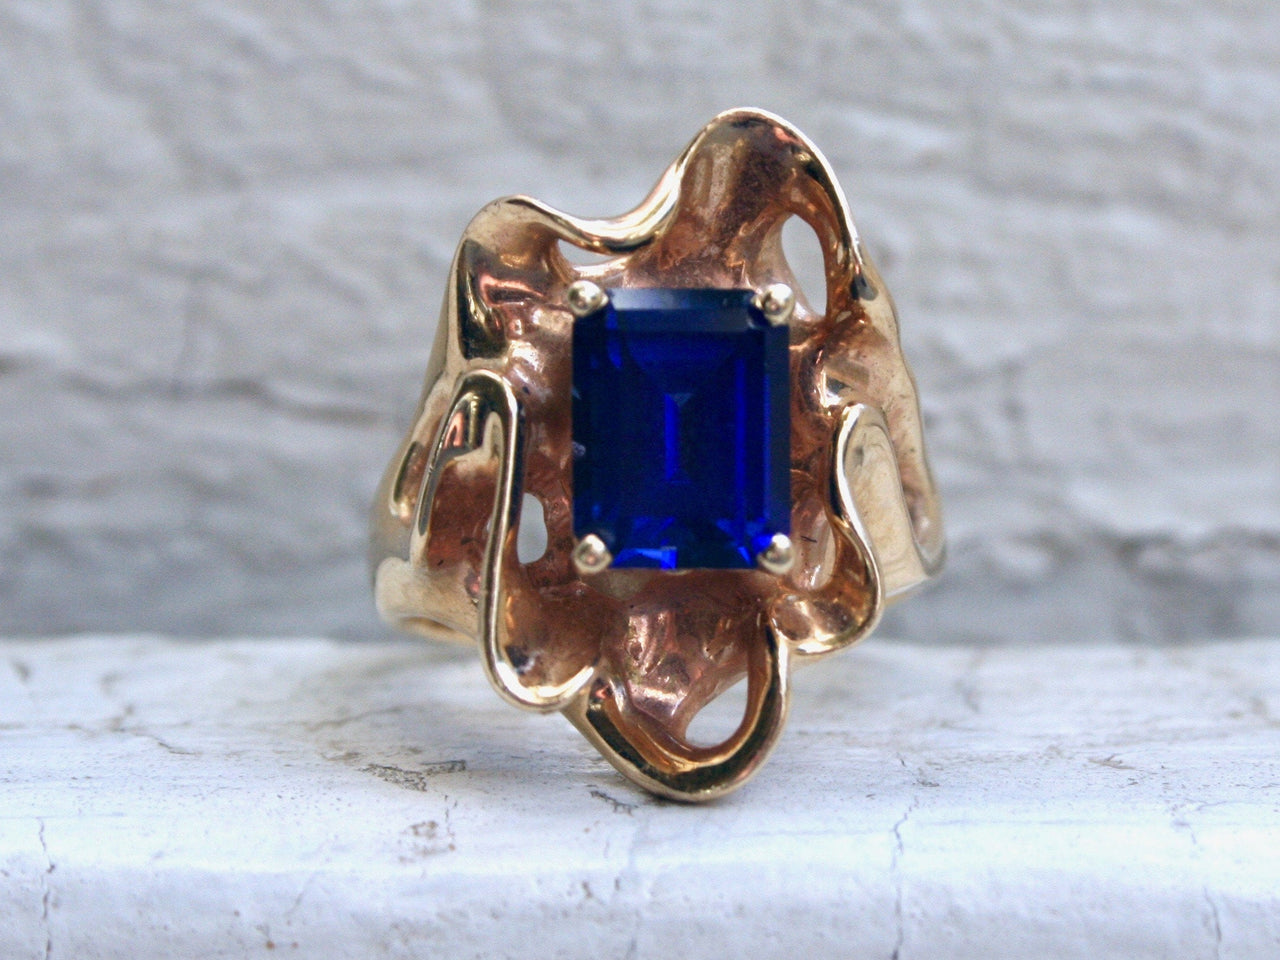 Vintage 18K Yellow Gold Synthetic Sapphire Solitaire Engagement Ring - 3.00ct.